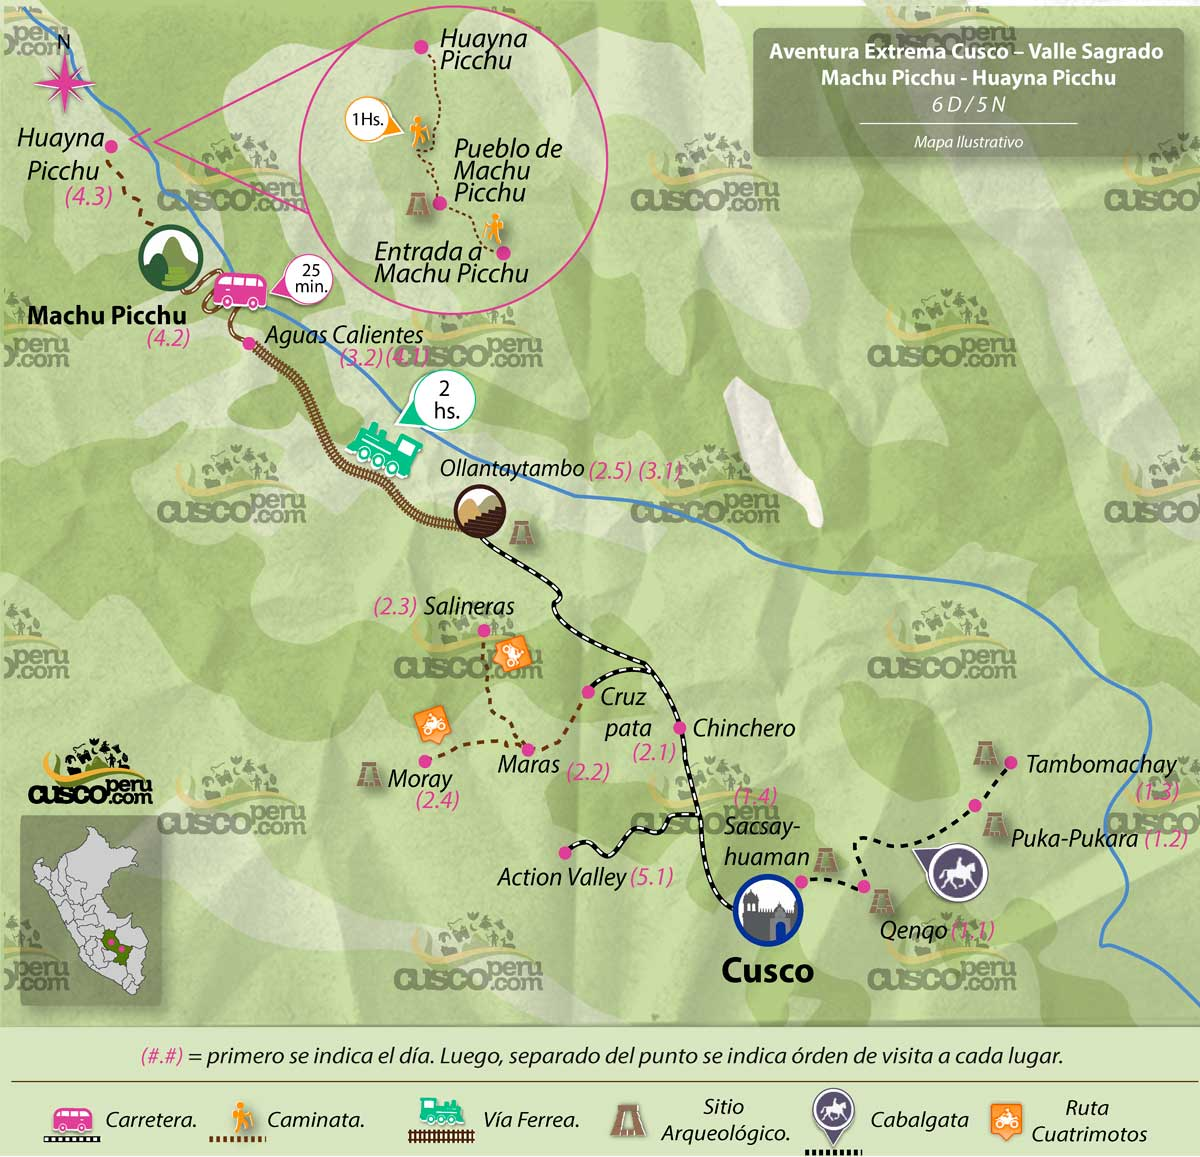 mapa tour de aventuira extrema action valley 6 dias